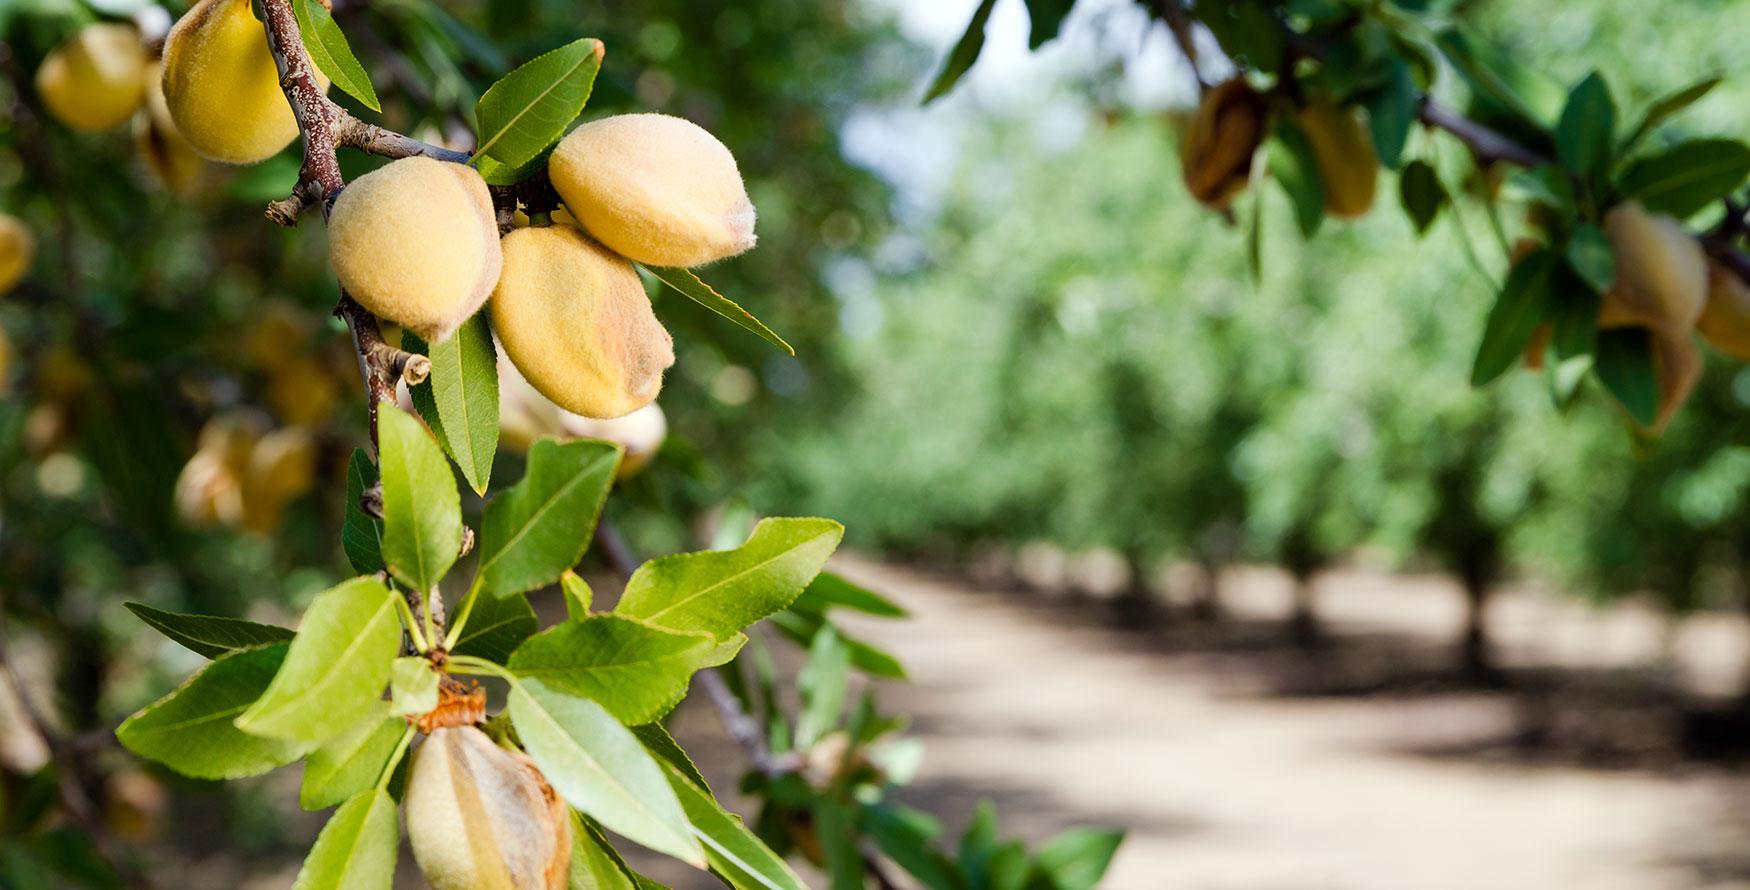 Image of an almond fruit which is harvested to produce our natural almond ingredients